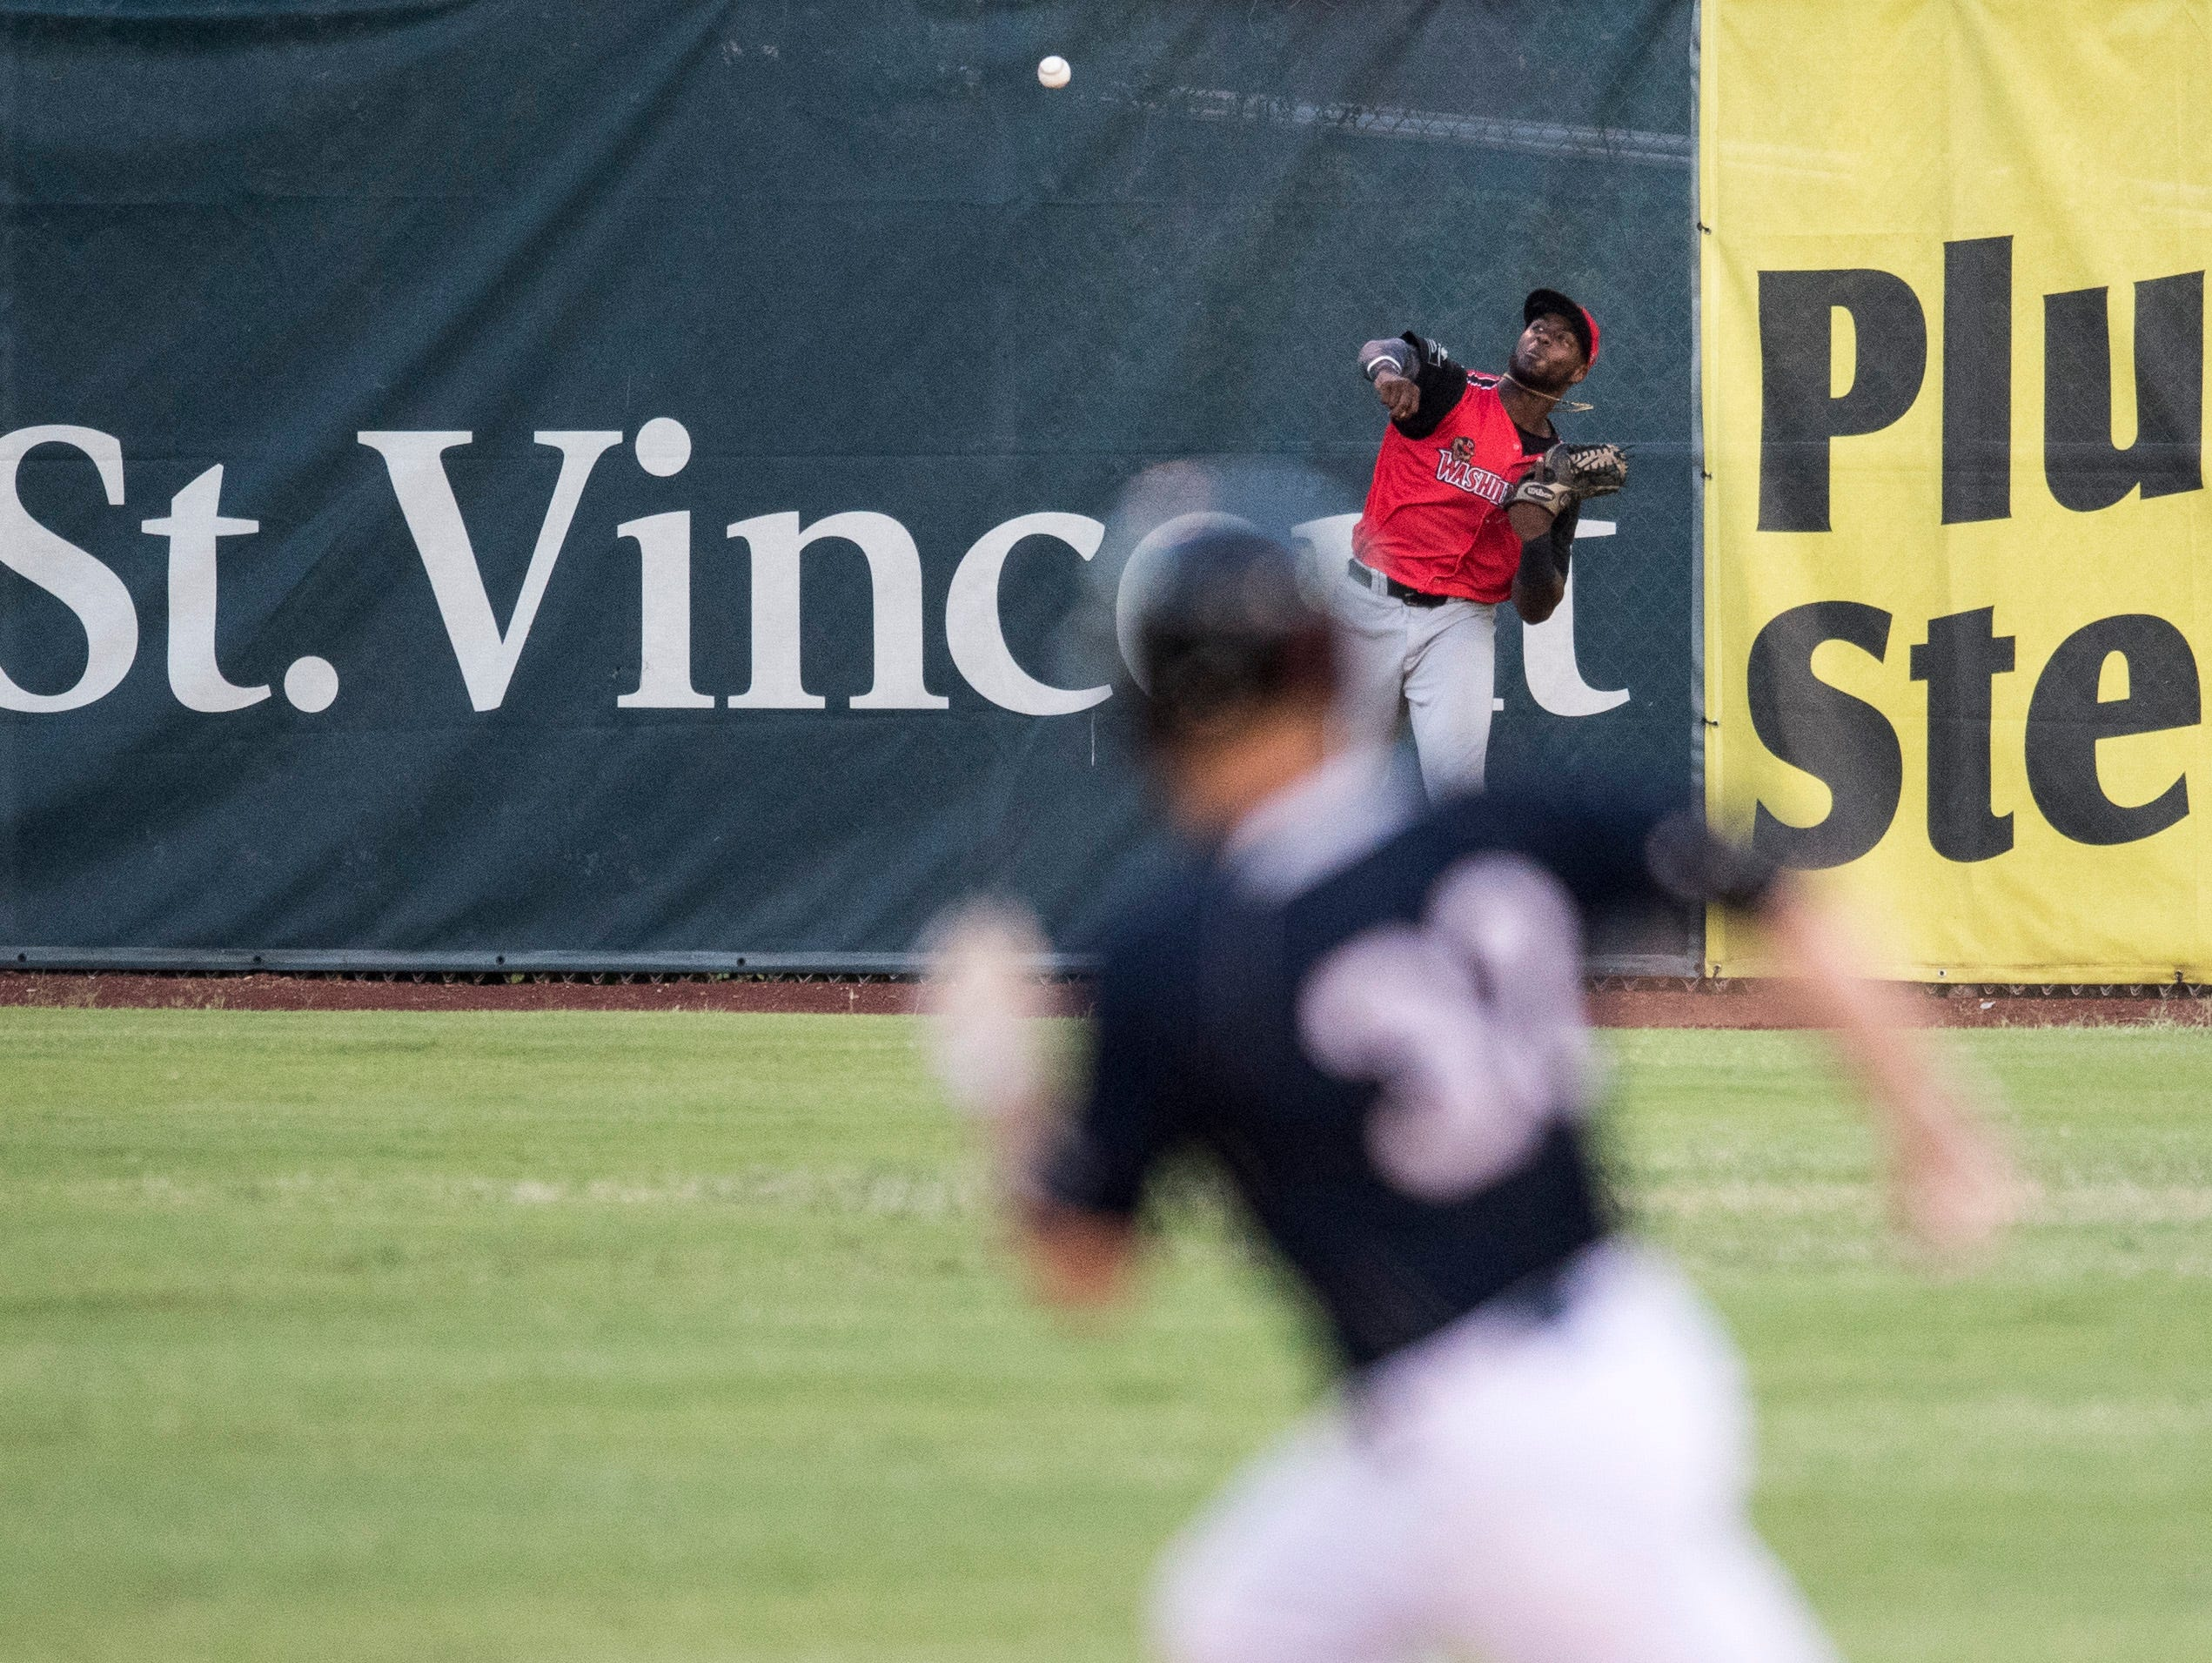 Washington's James Harris (4) throws the ball in from the outfield during game two of the Frontier League Division Series at Bosse Field against the Evansville Otters Wednesday, September 5, 2018.